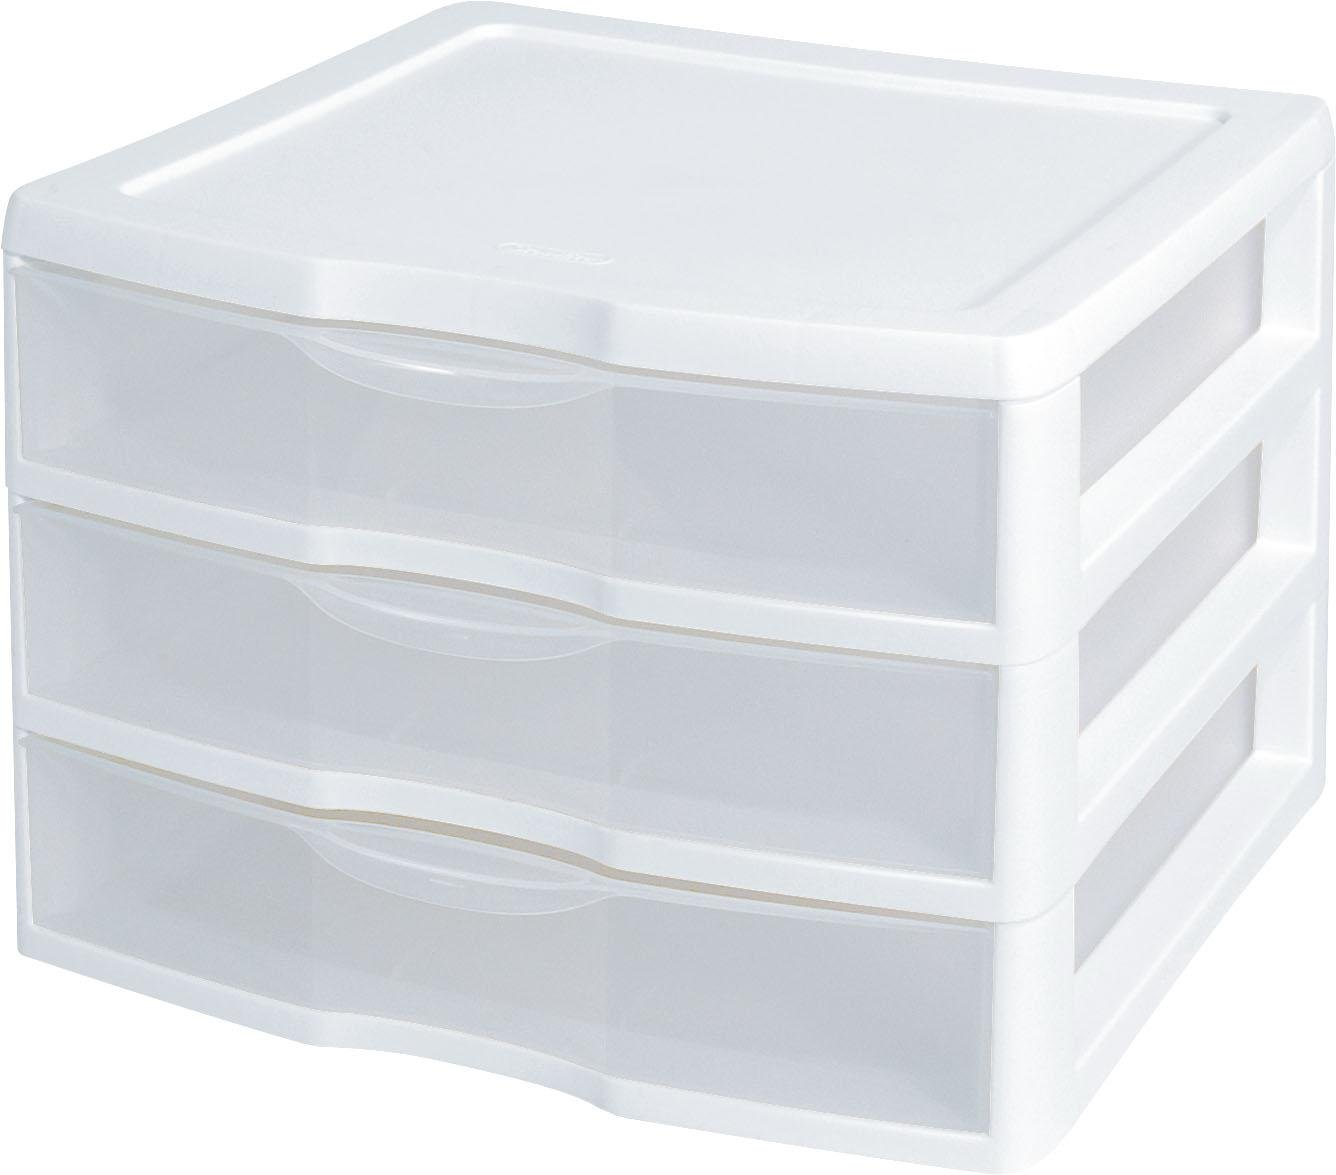 Sterilite 3-Drawer Organizer - ClearView Wide 2093 (White / Clear) (10.25''H x 14.5''W x 14.25''D) PACK OF 2